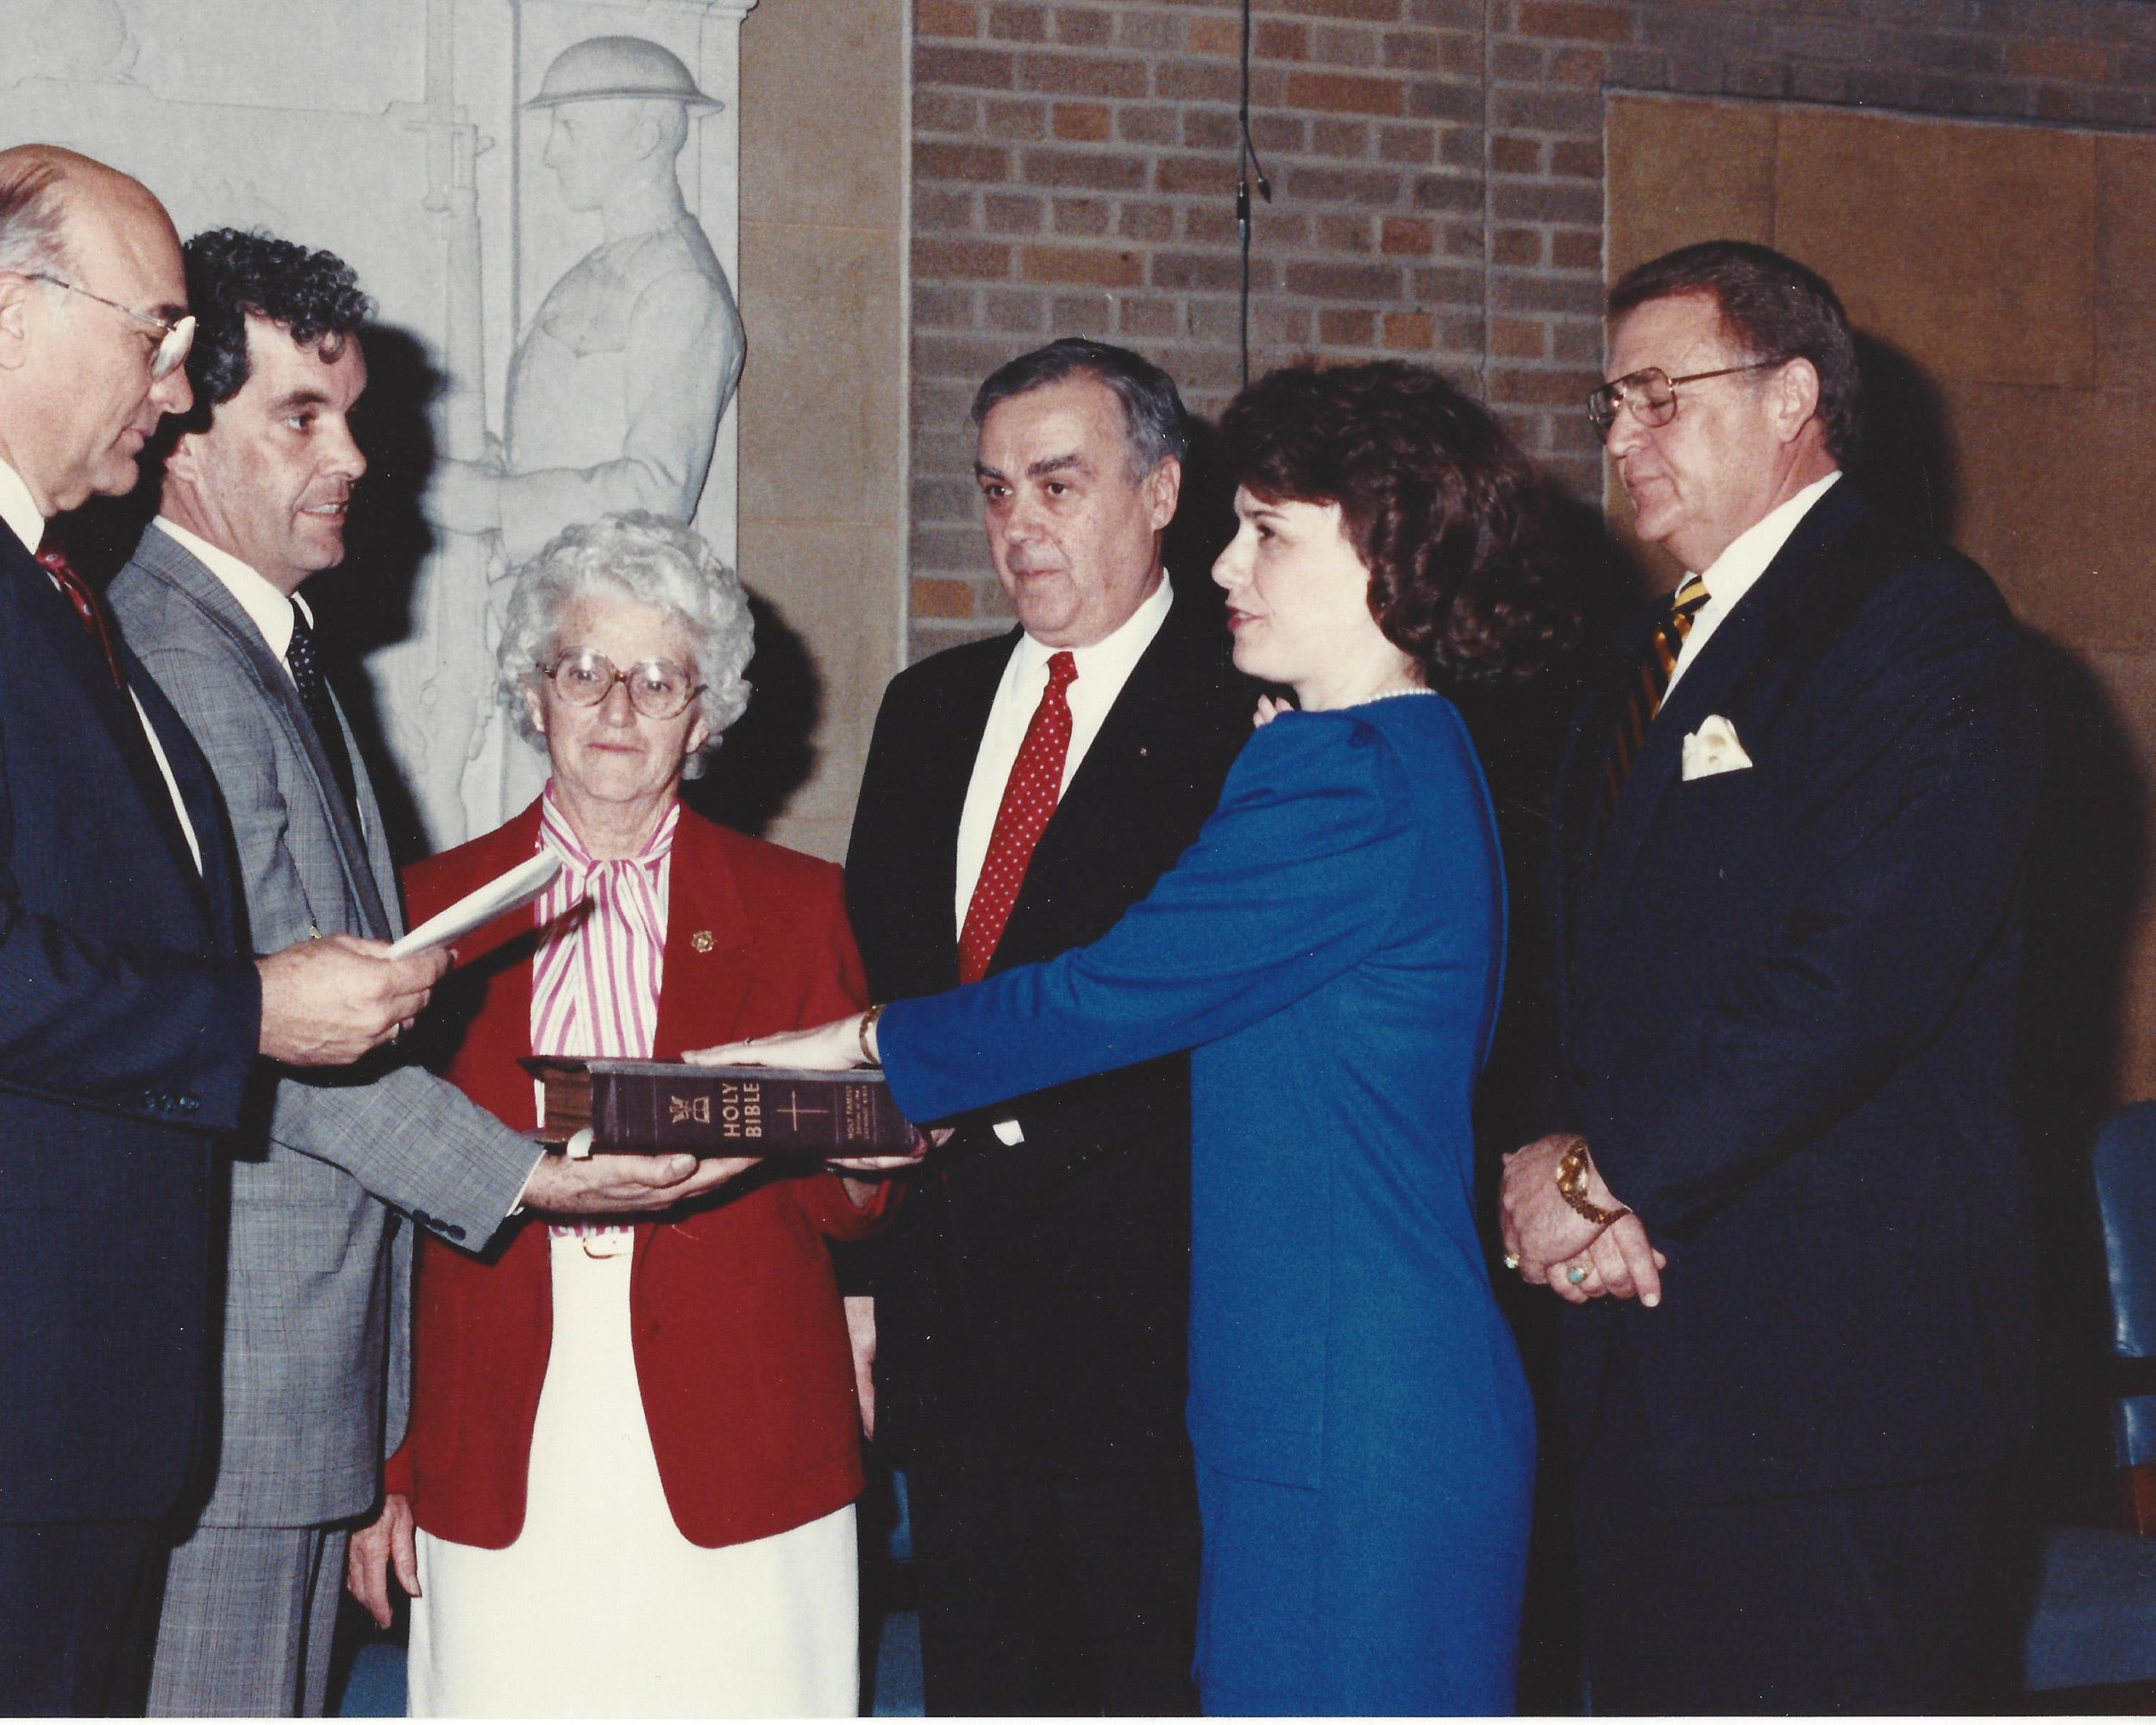 USDA Secretary Clayton Yeutter (left), Deputy Secretary Jack Parnell swearing in Catherine Bertini as USDA Assistant Secretary, with her family looking on (1989).